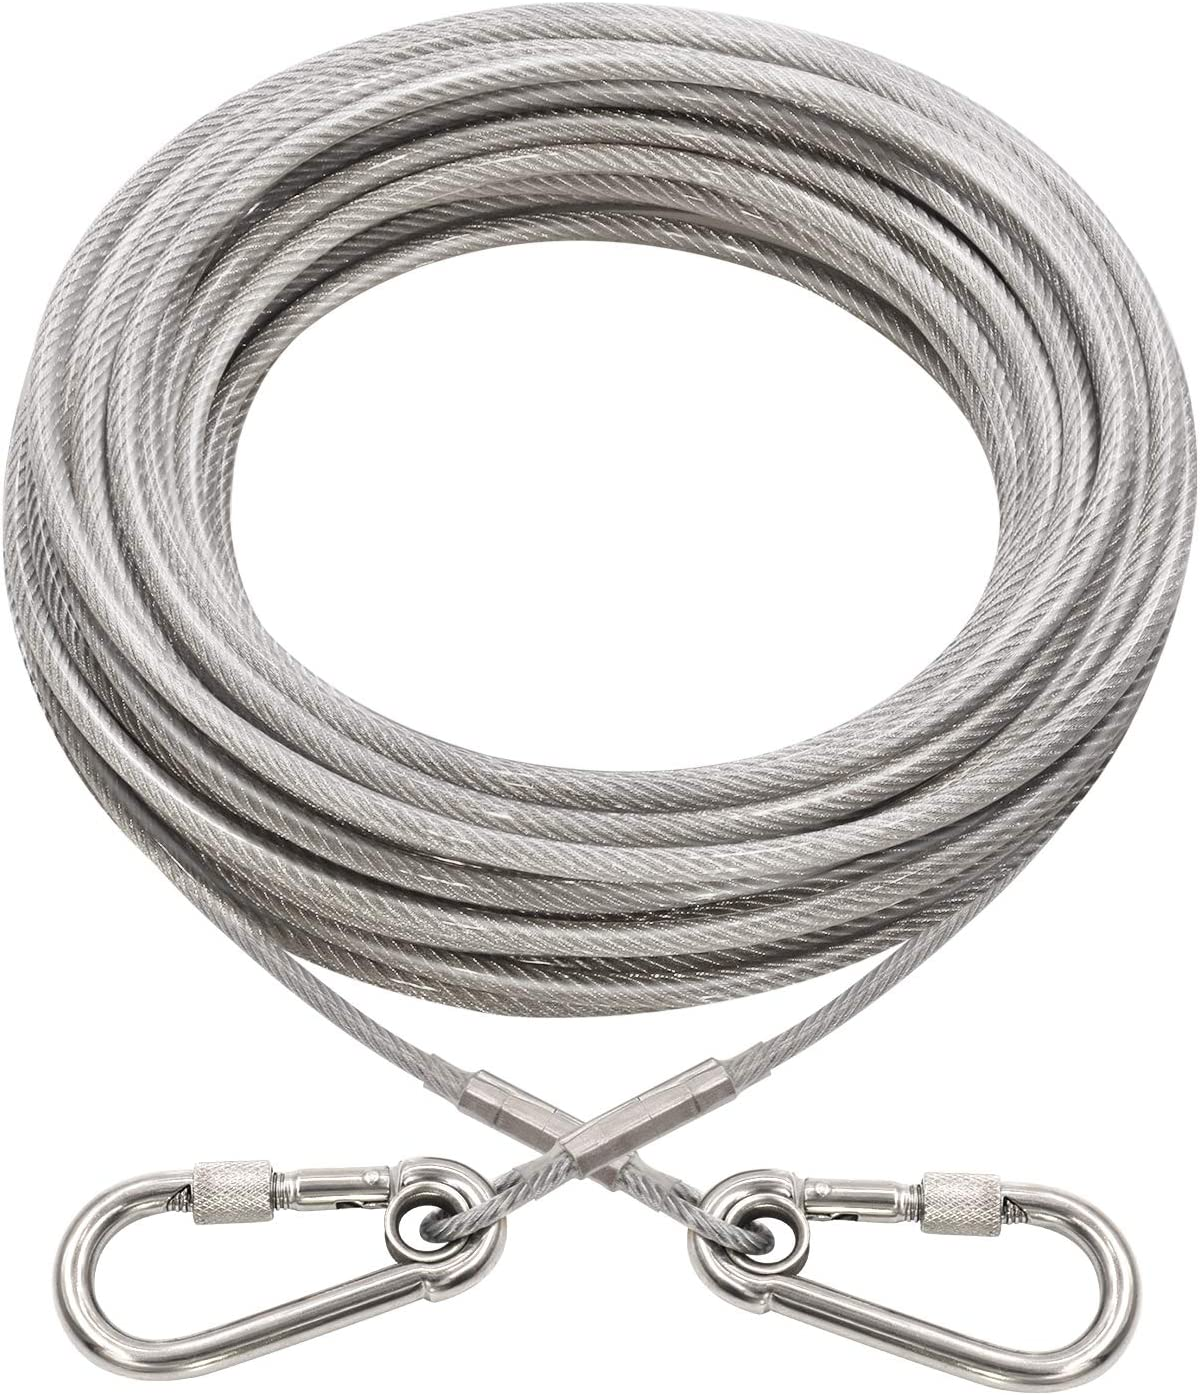 XiaZ Dog Runner Tie Safety and trust Attention brand Out Cable for Dogs 60 120 to 1 250 Up Pound